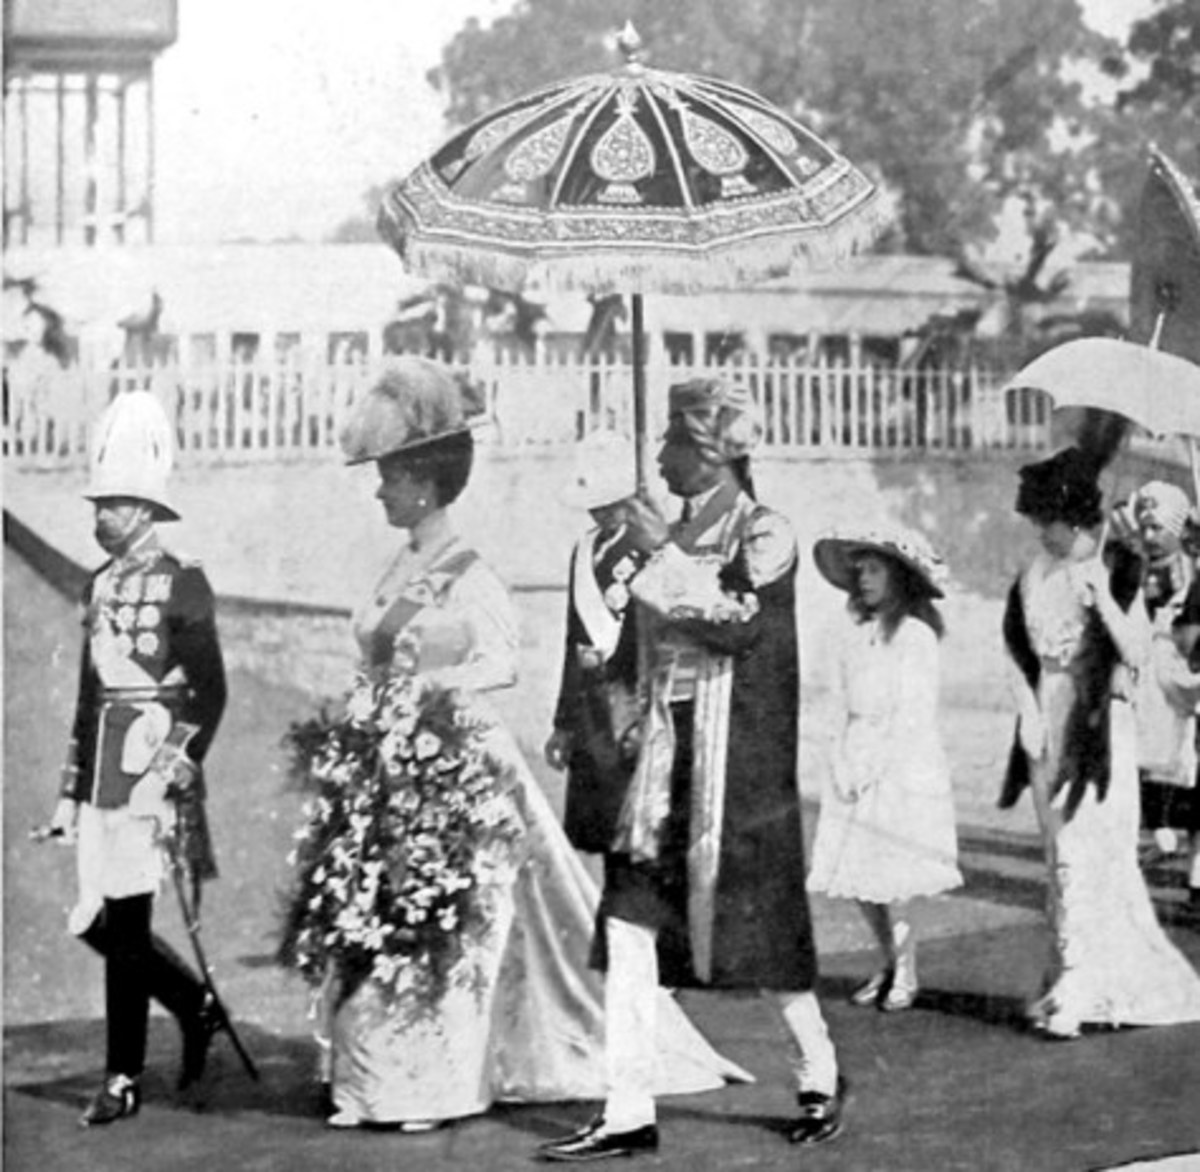 King George V and his wife Queen Mary (deferentially a step behind the monarch) in India in 1912. No doubt the Indian people were greatly impressed.